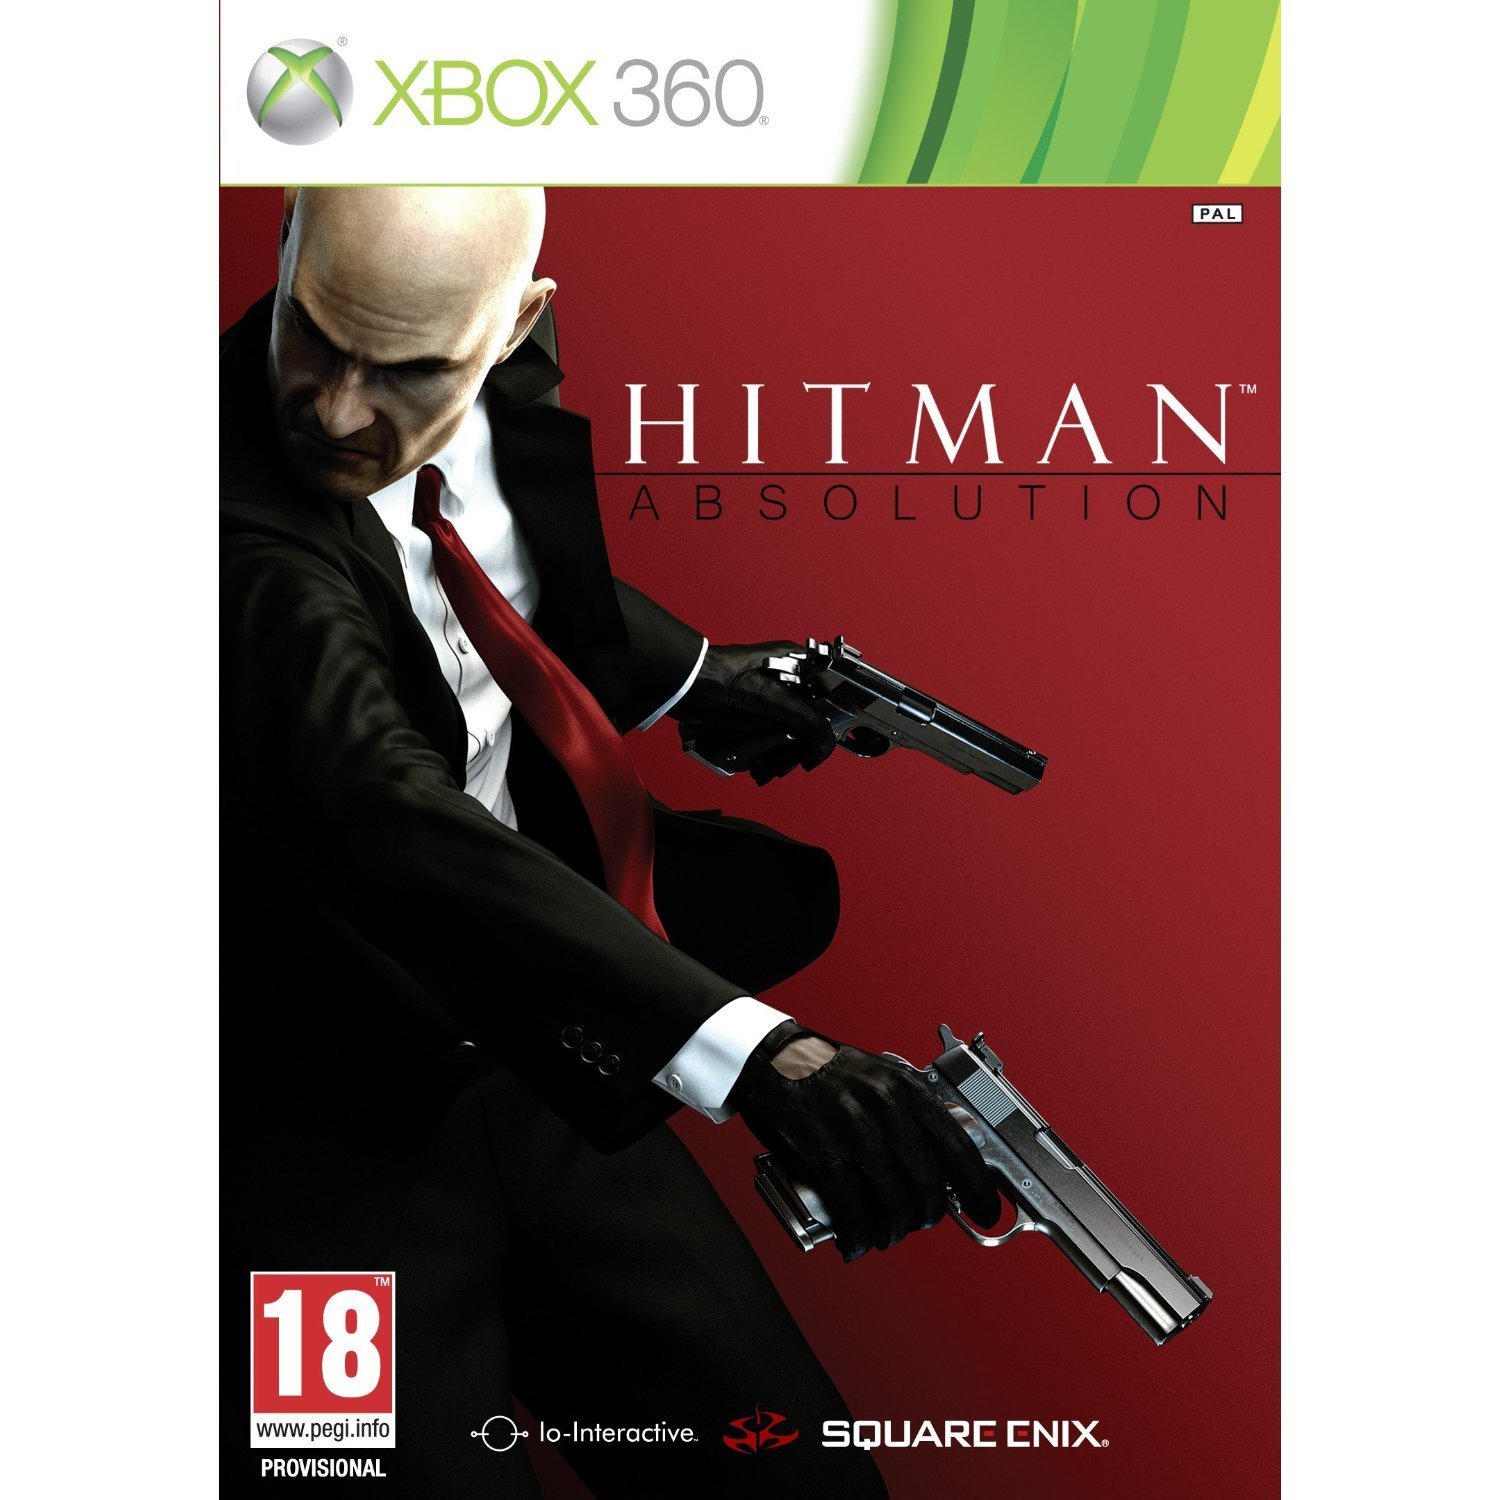 Hitman Absolution (Xbox 360) product image